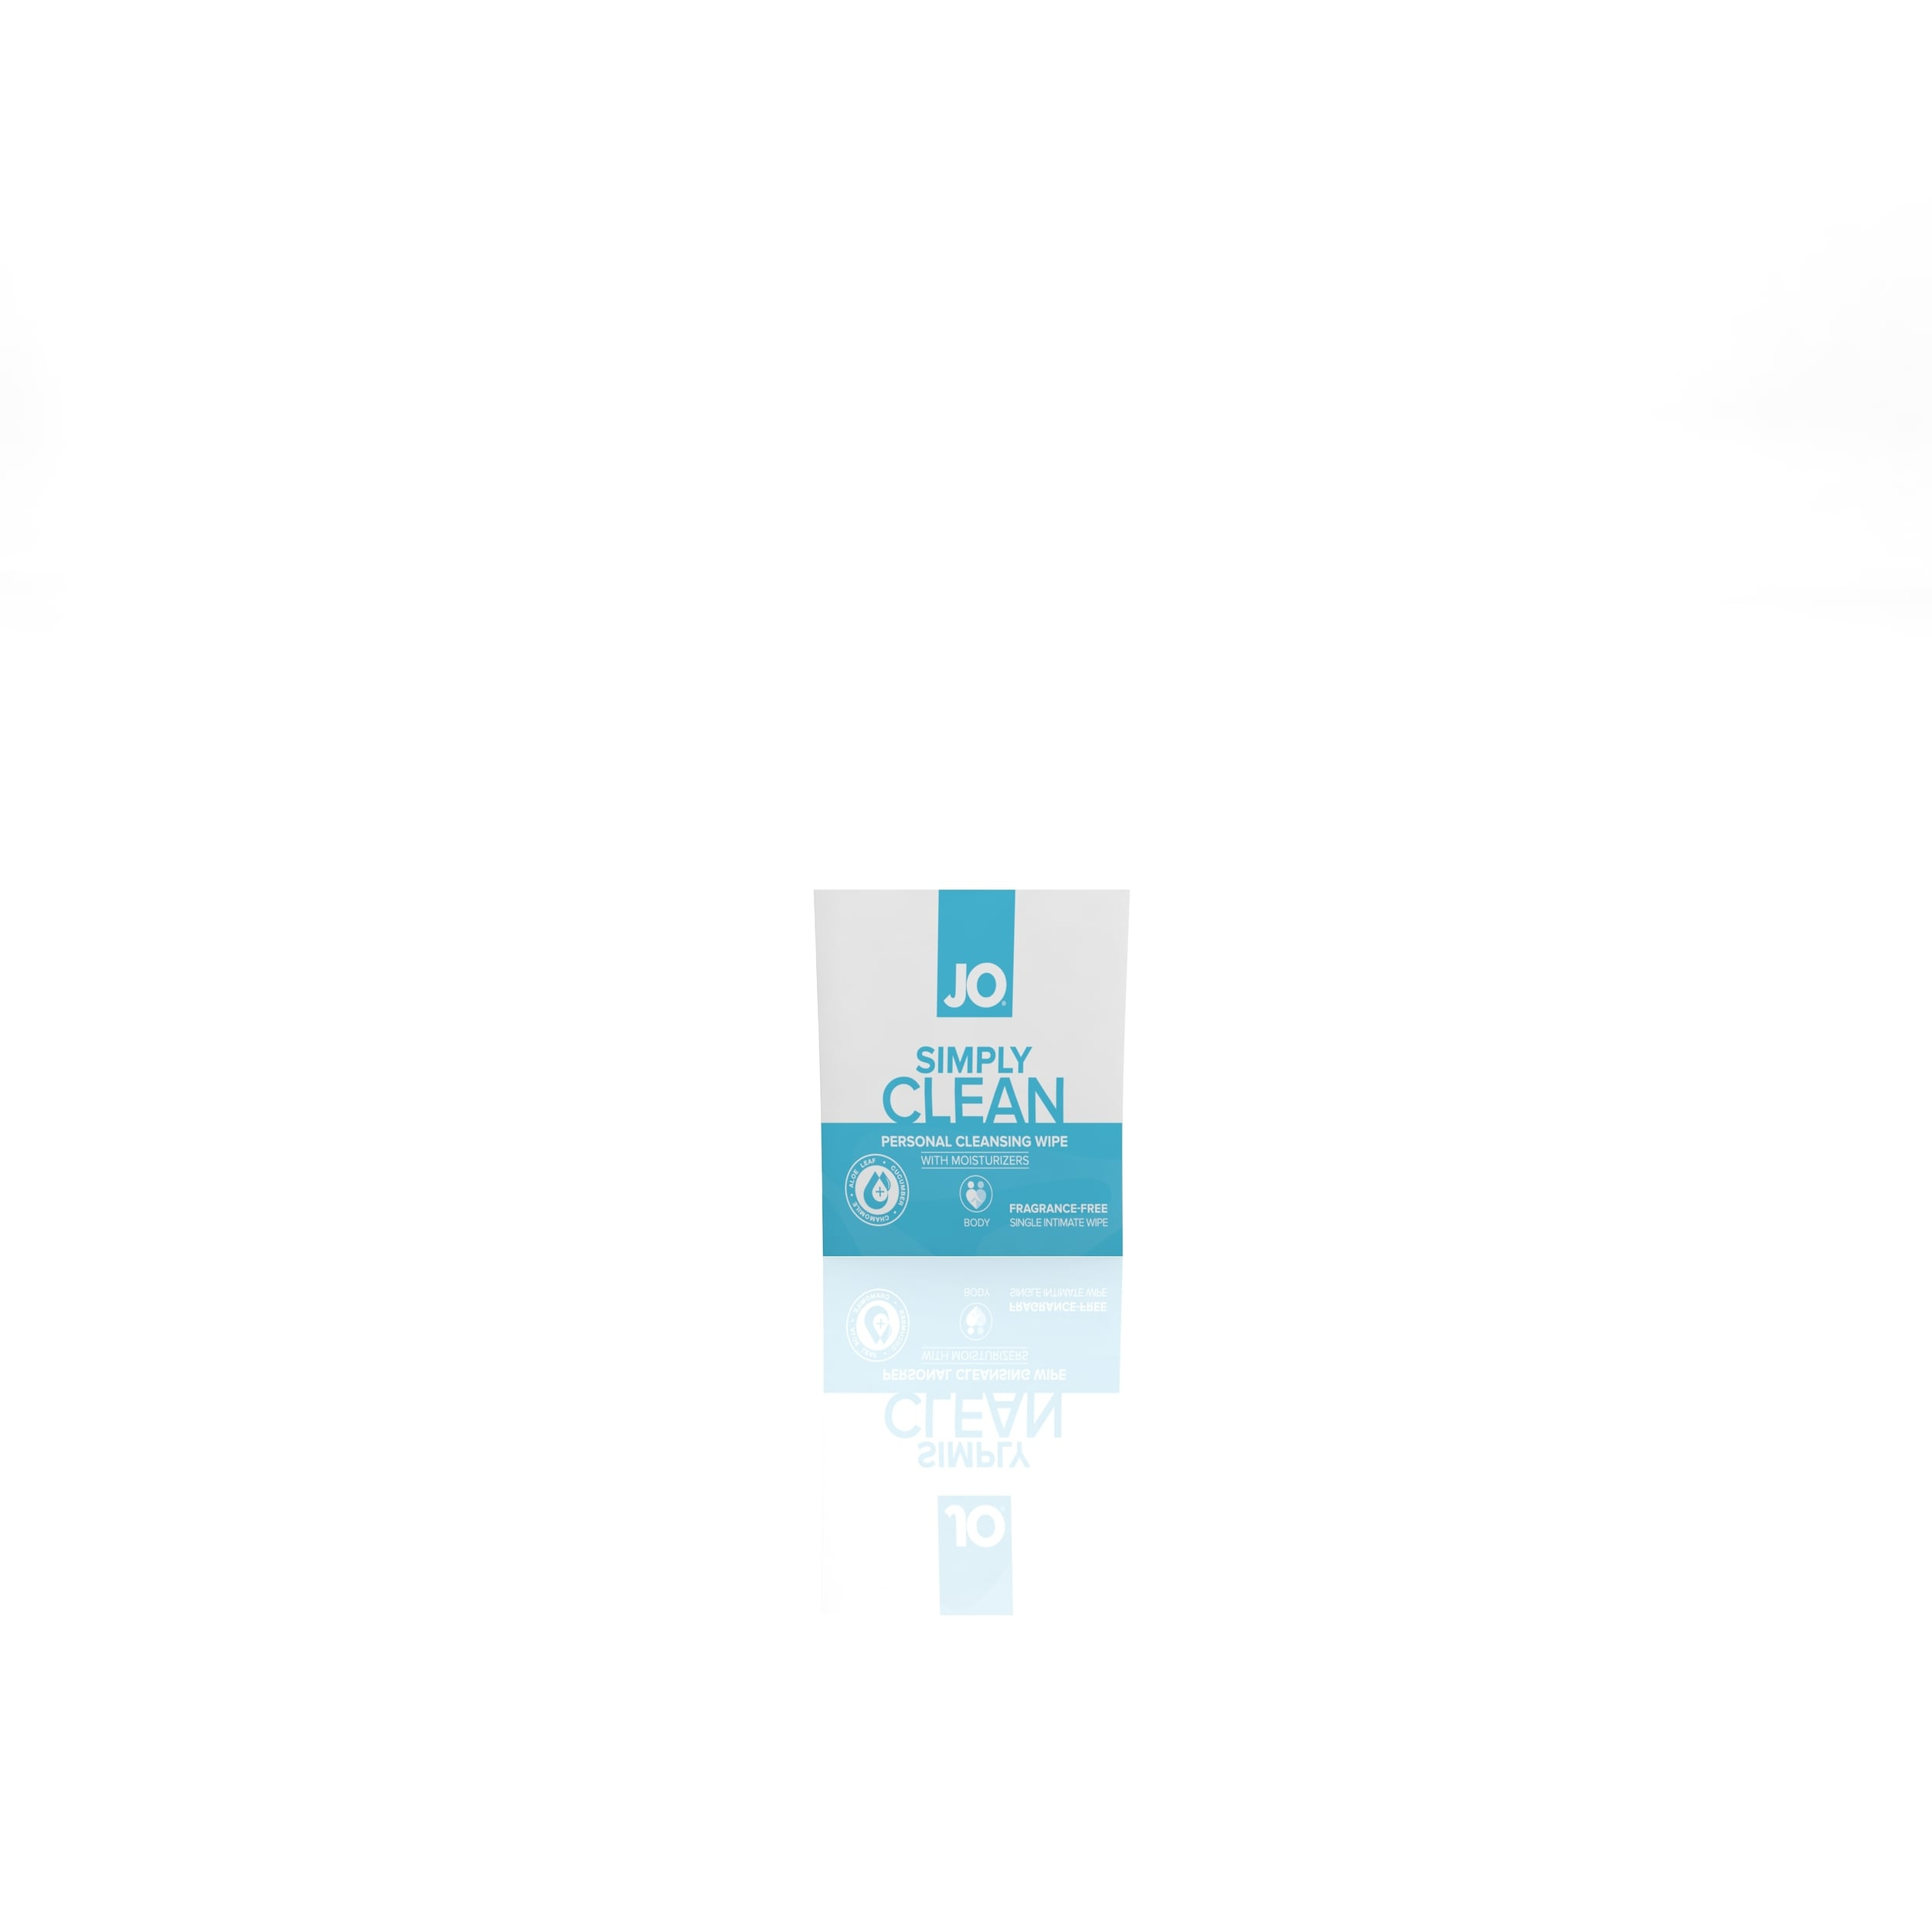 10220 - JO PERSONAL CLEANSING WIPES - SIMPLY CLEAN - single pack  (MOQ 24 units - Includes Counter Display) ISO.jpg